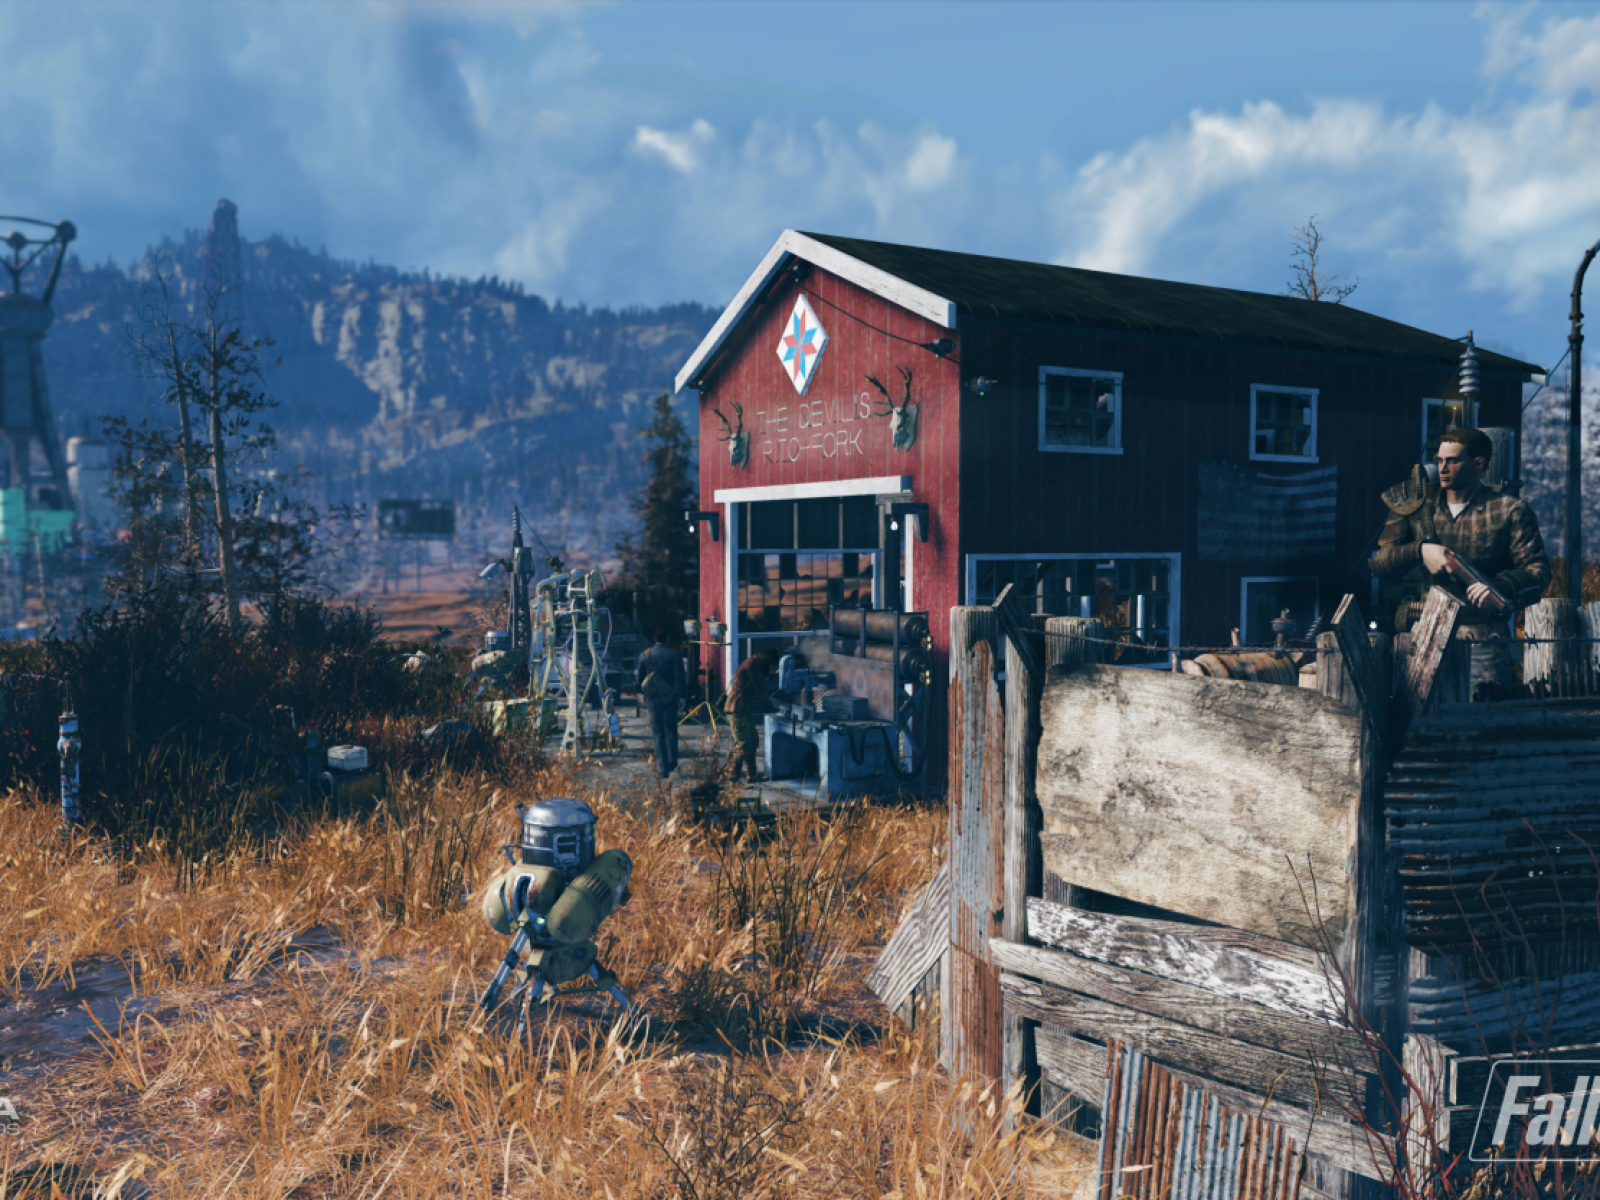 Fallout 76' Loot Guide: Locations, Junk and Managing Stash